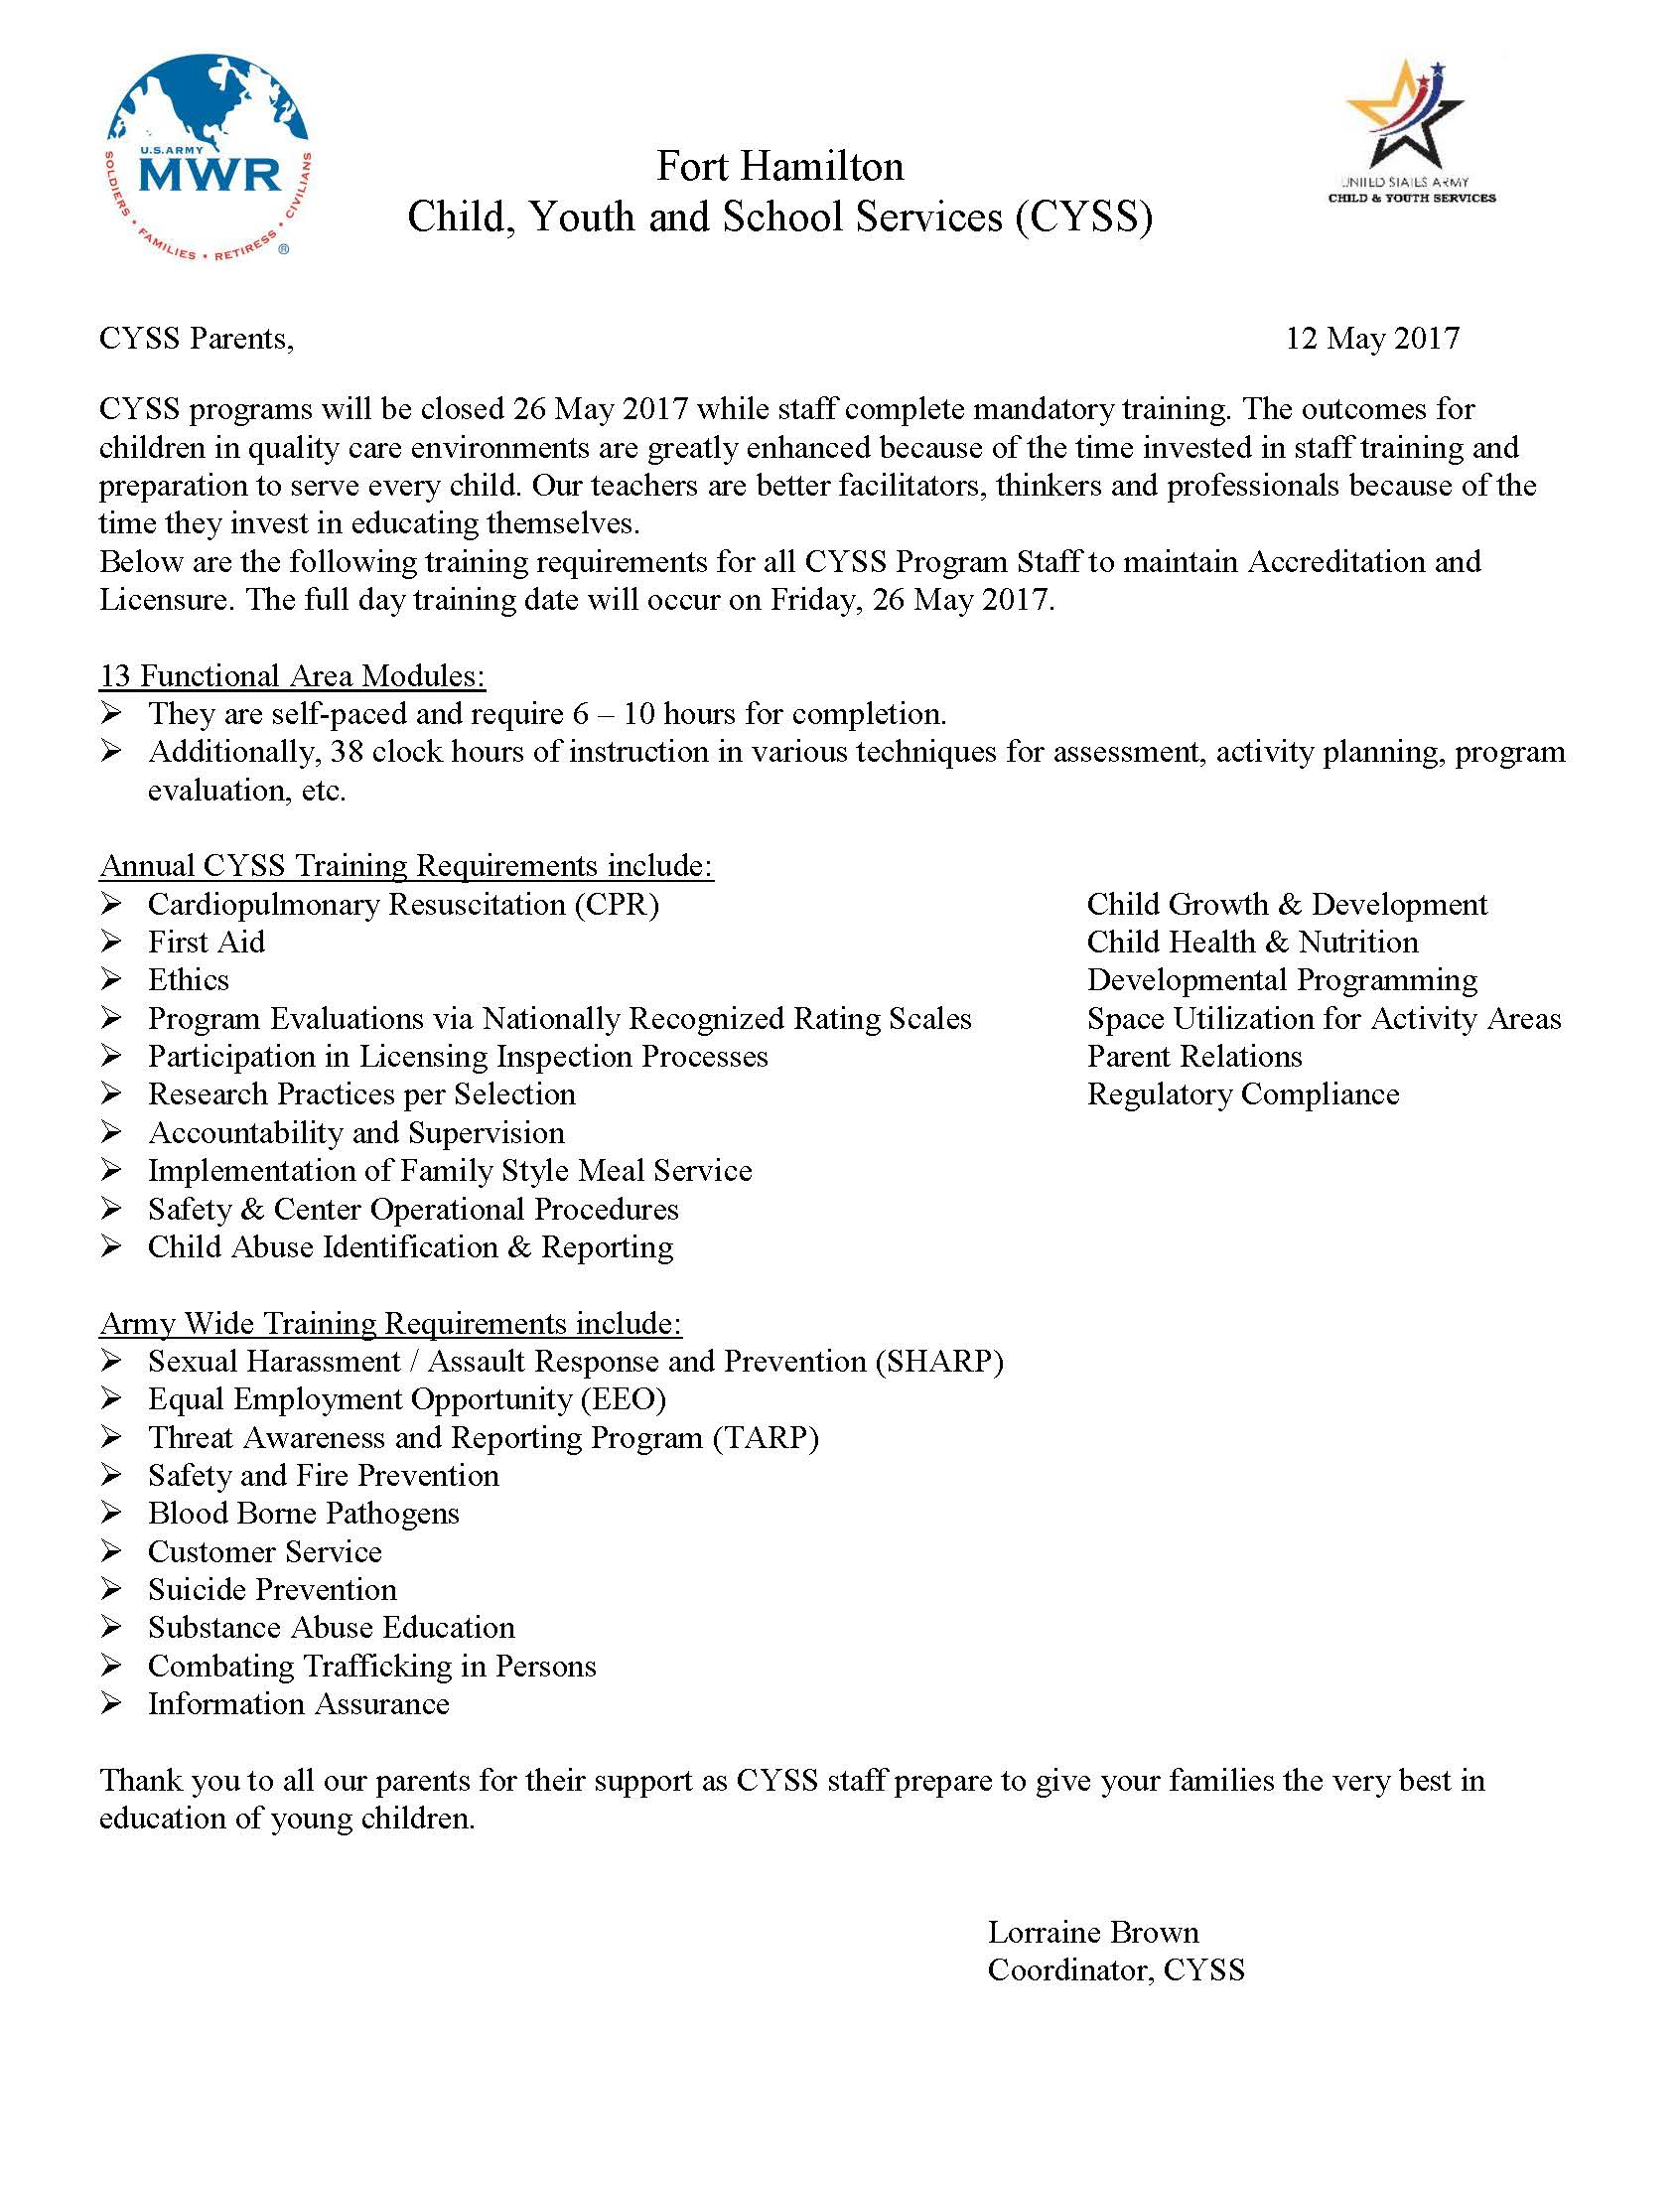 Parent Letter for CYSS Training 26may2017 (002).jpg